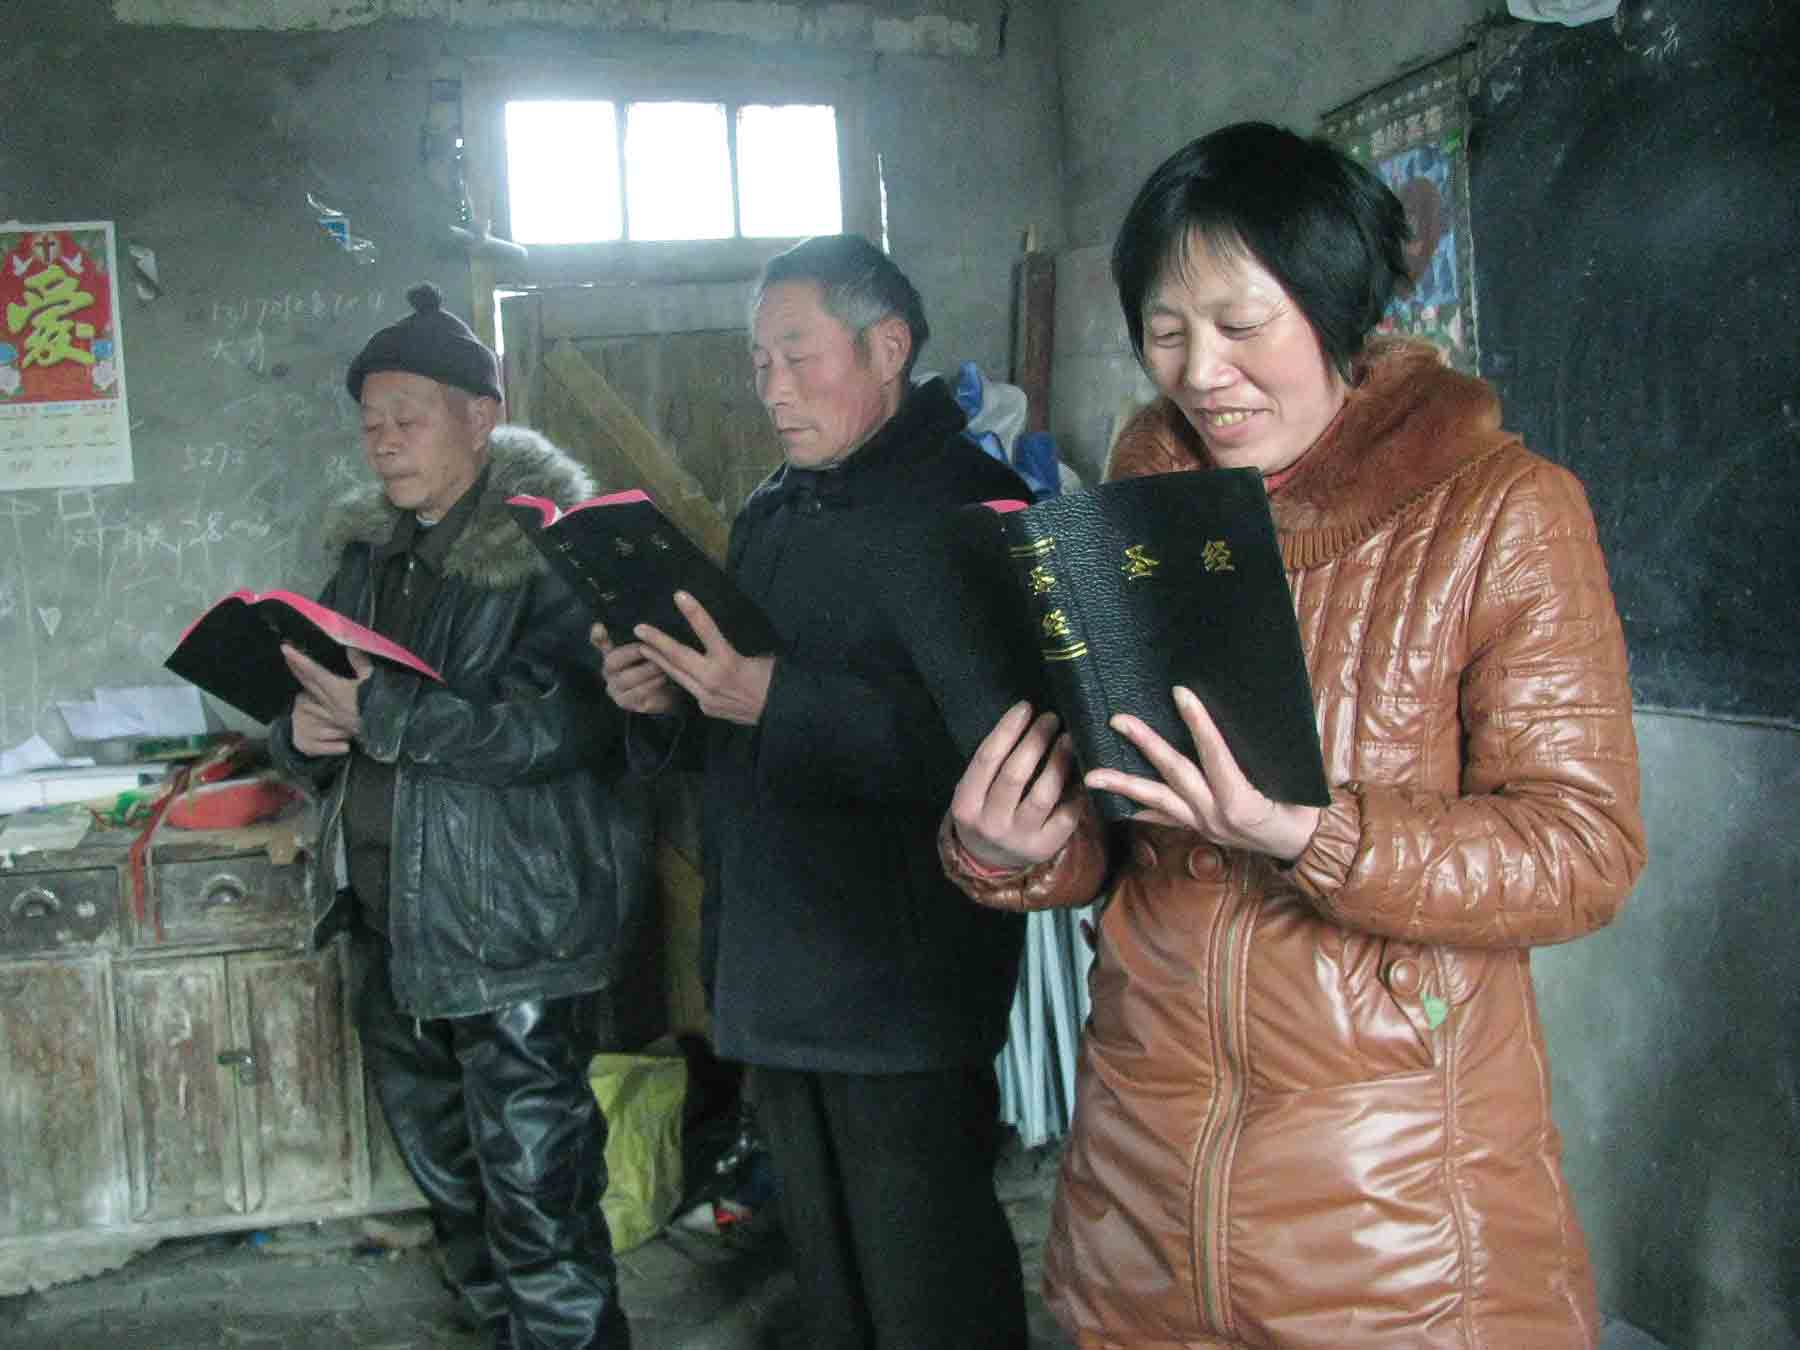 Village Christians have been forced to remove religious images and replace them with images of President Xi Jinping.